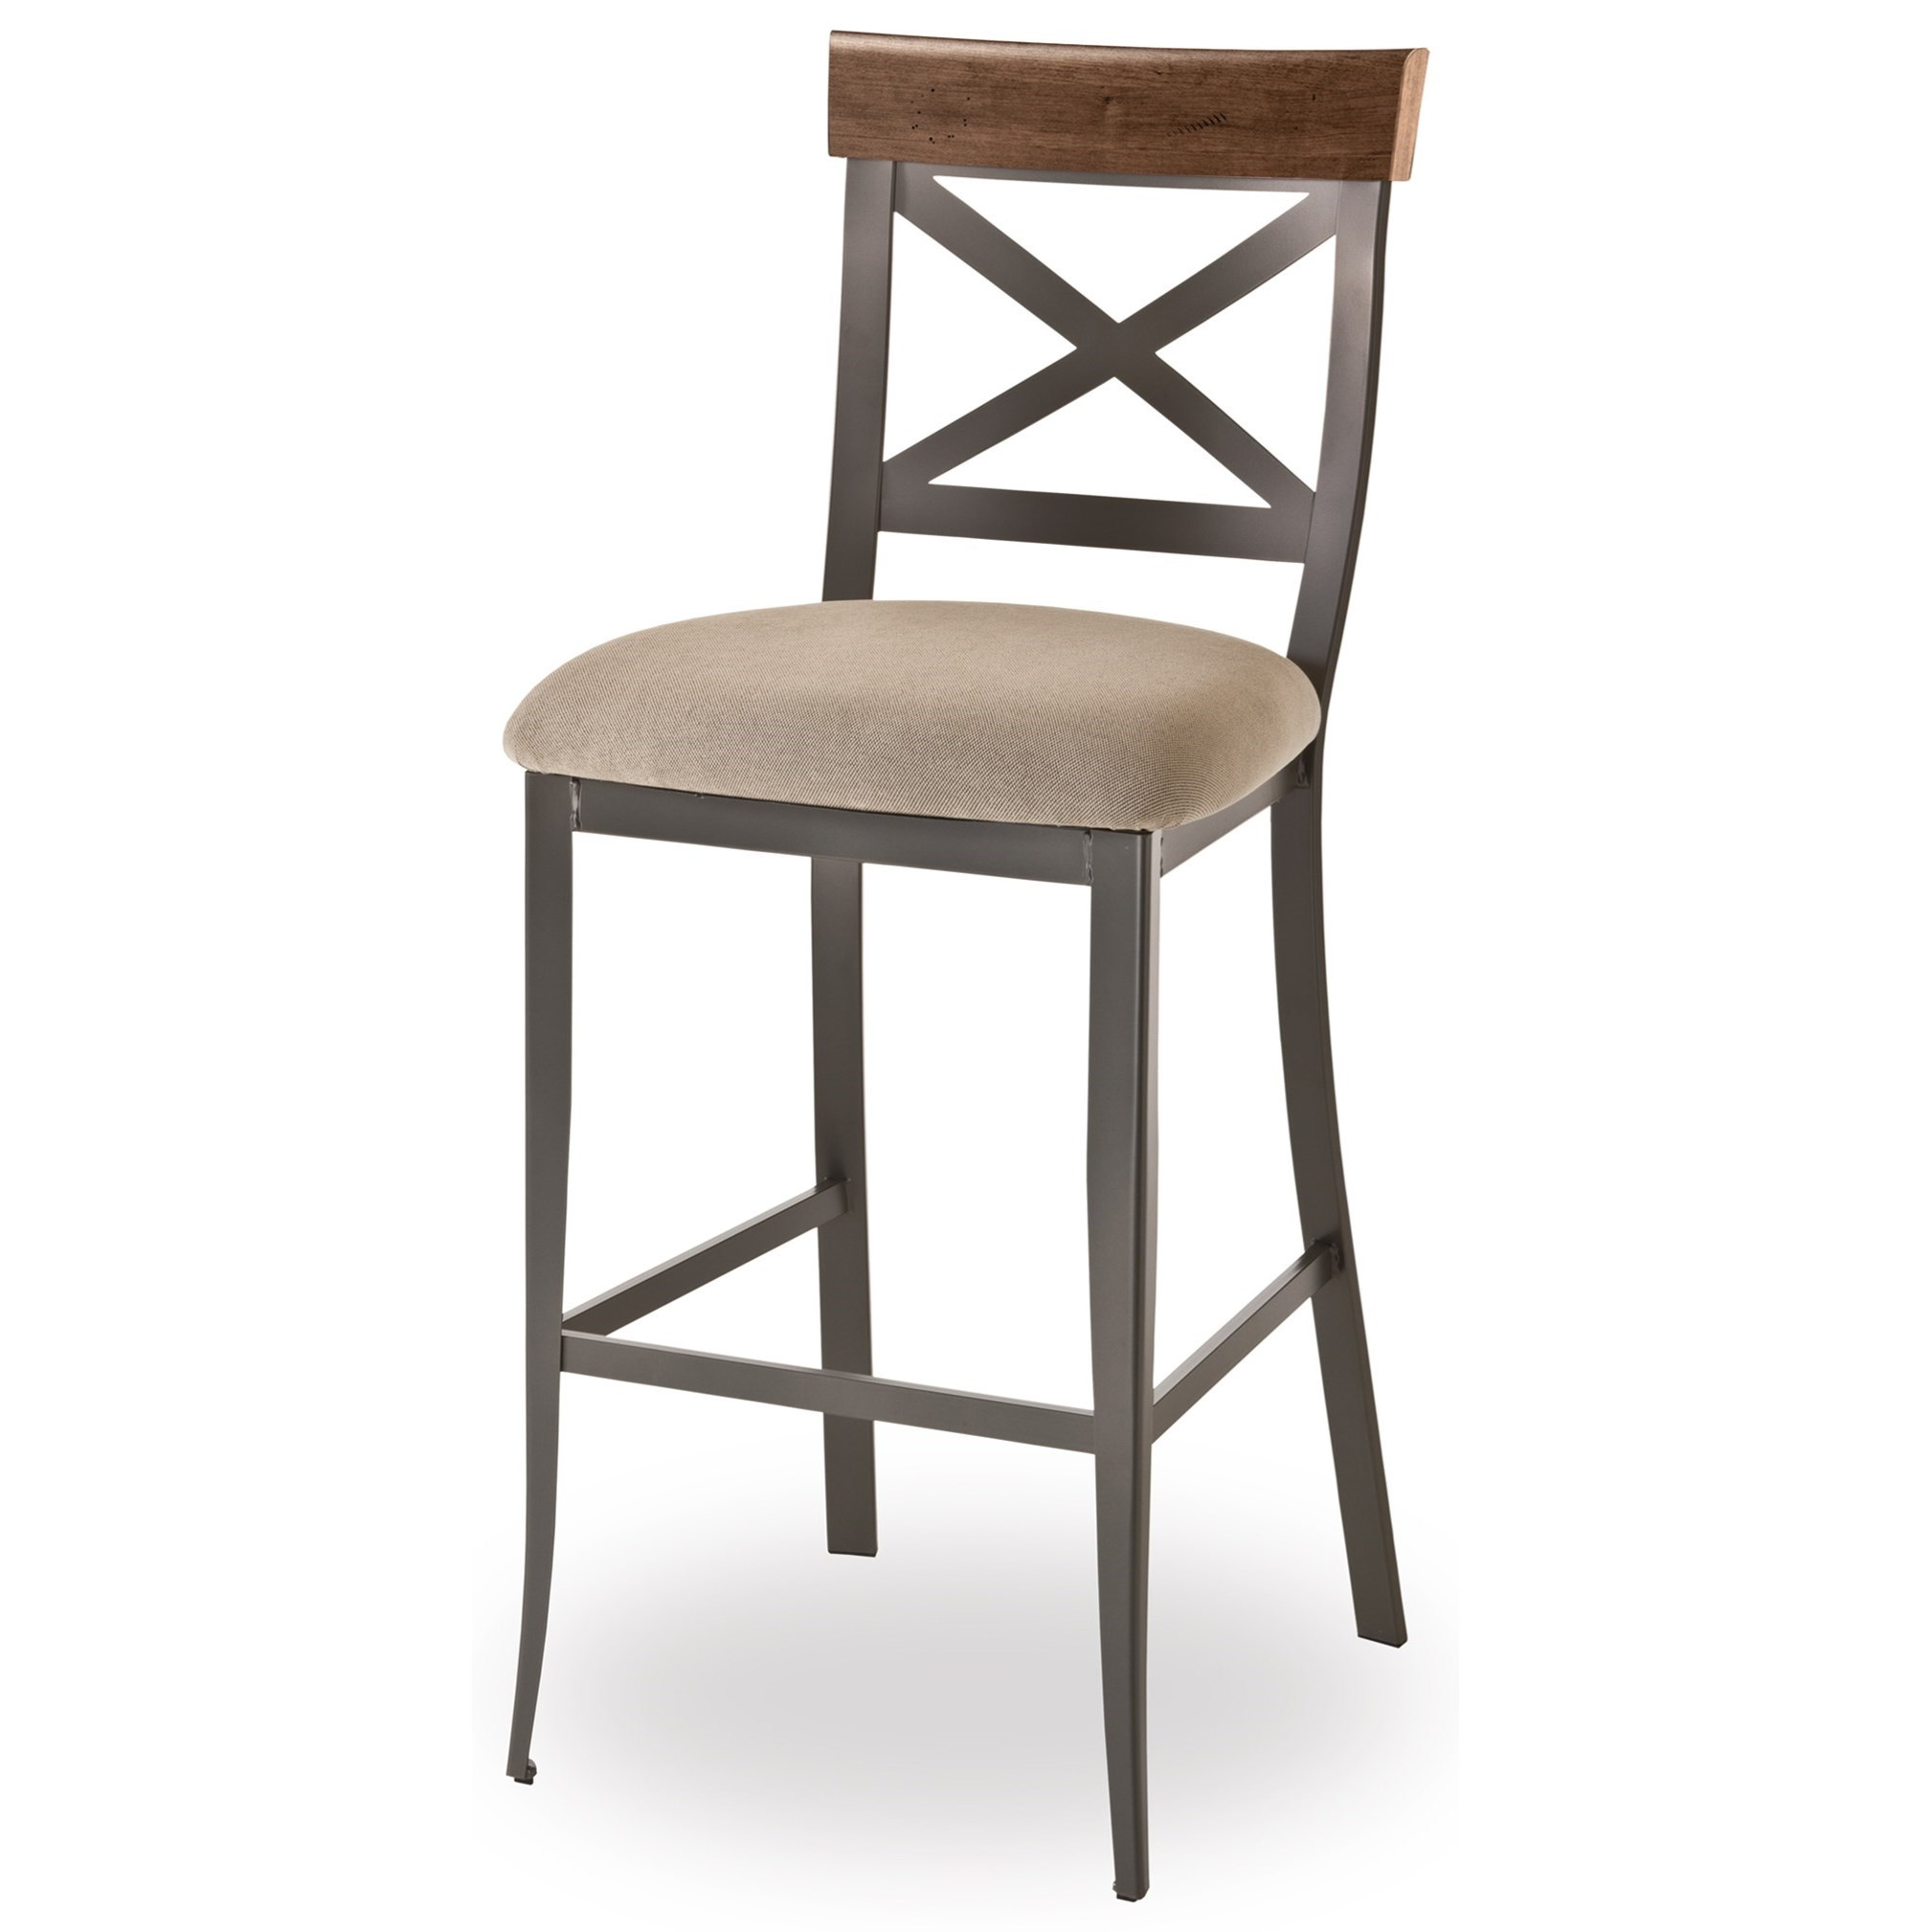 """Industrial 26"""" Kyle Stool with Upholstered Seat by Amisco at Dinette Depot"""